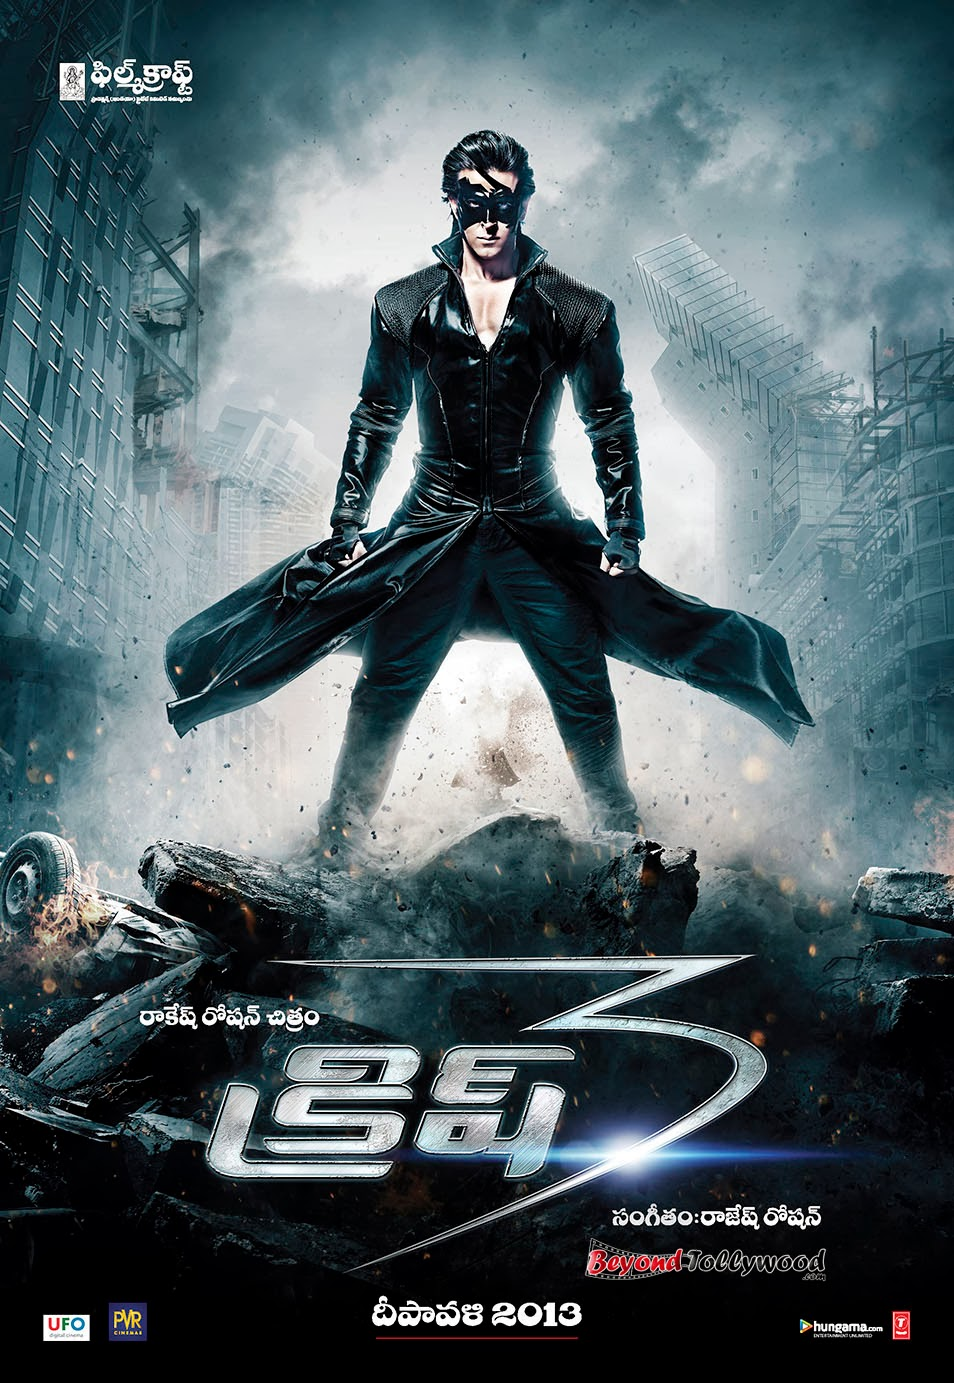 Watch Krrish 3 (2013) Telugu Dubbed Scam Rip Full Movie Watch Online For Free Download